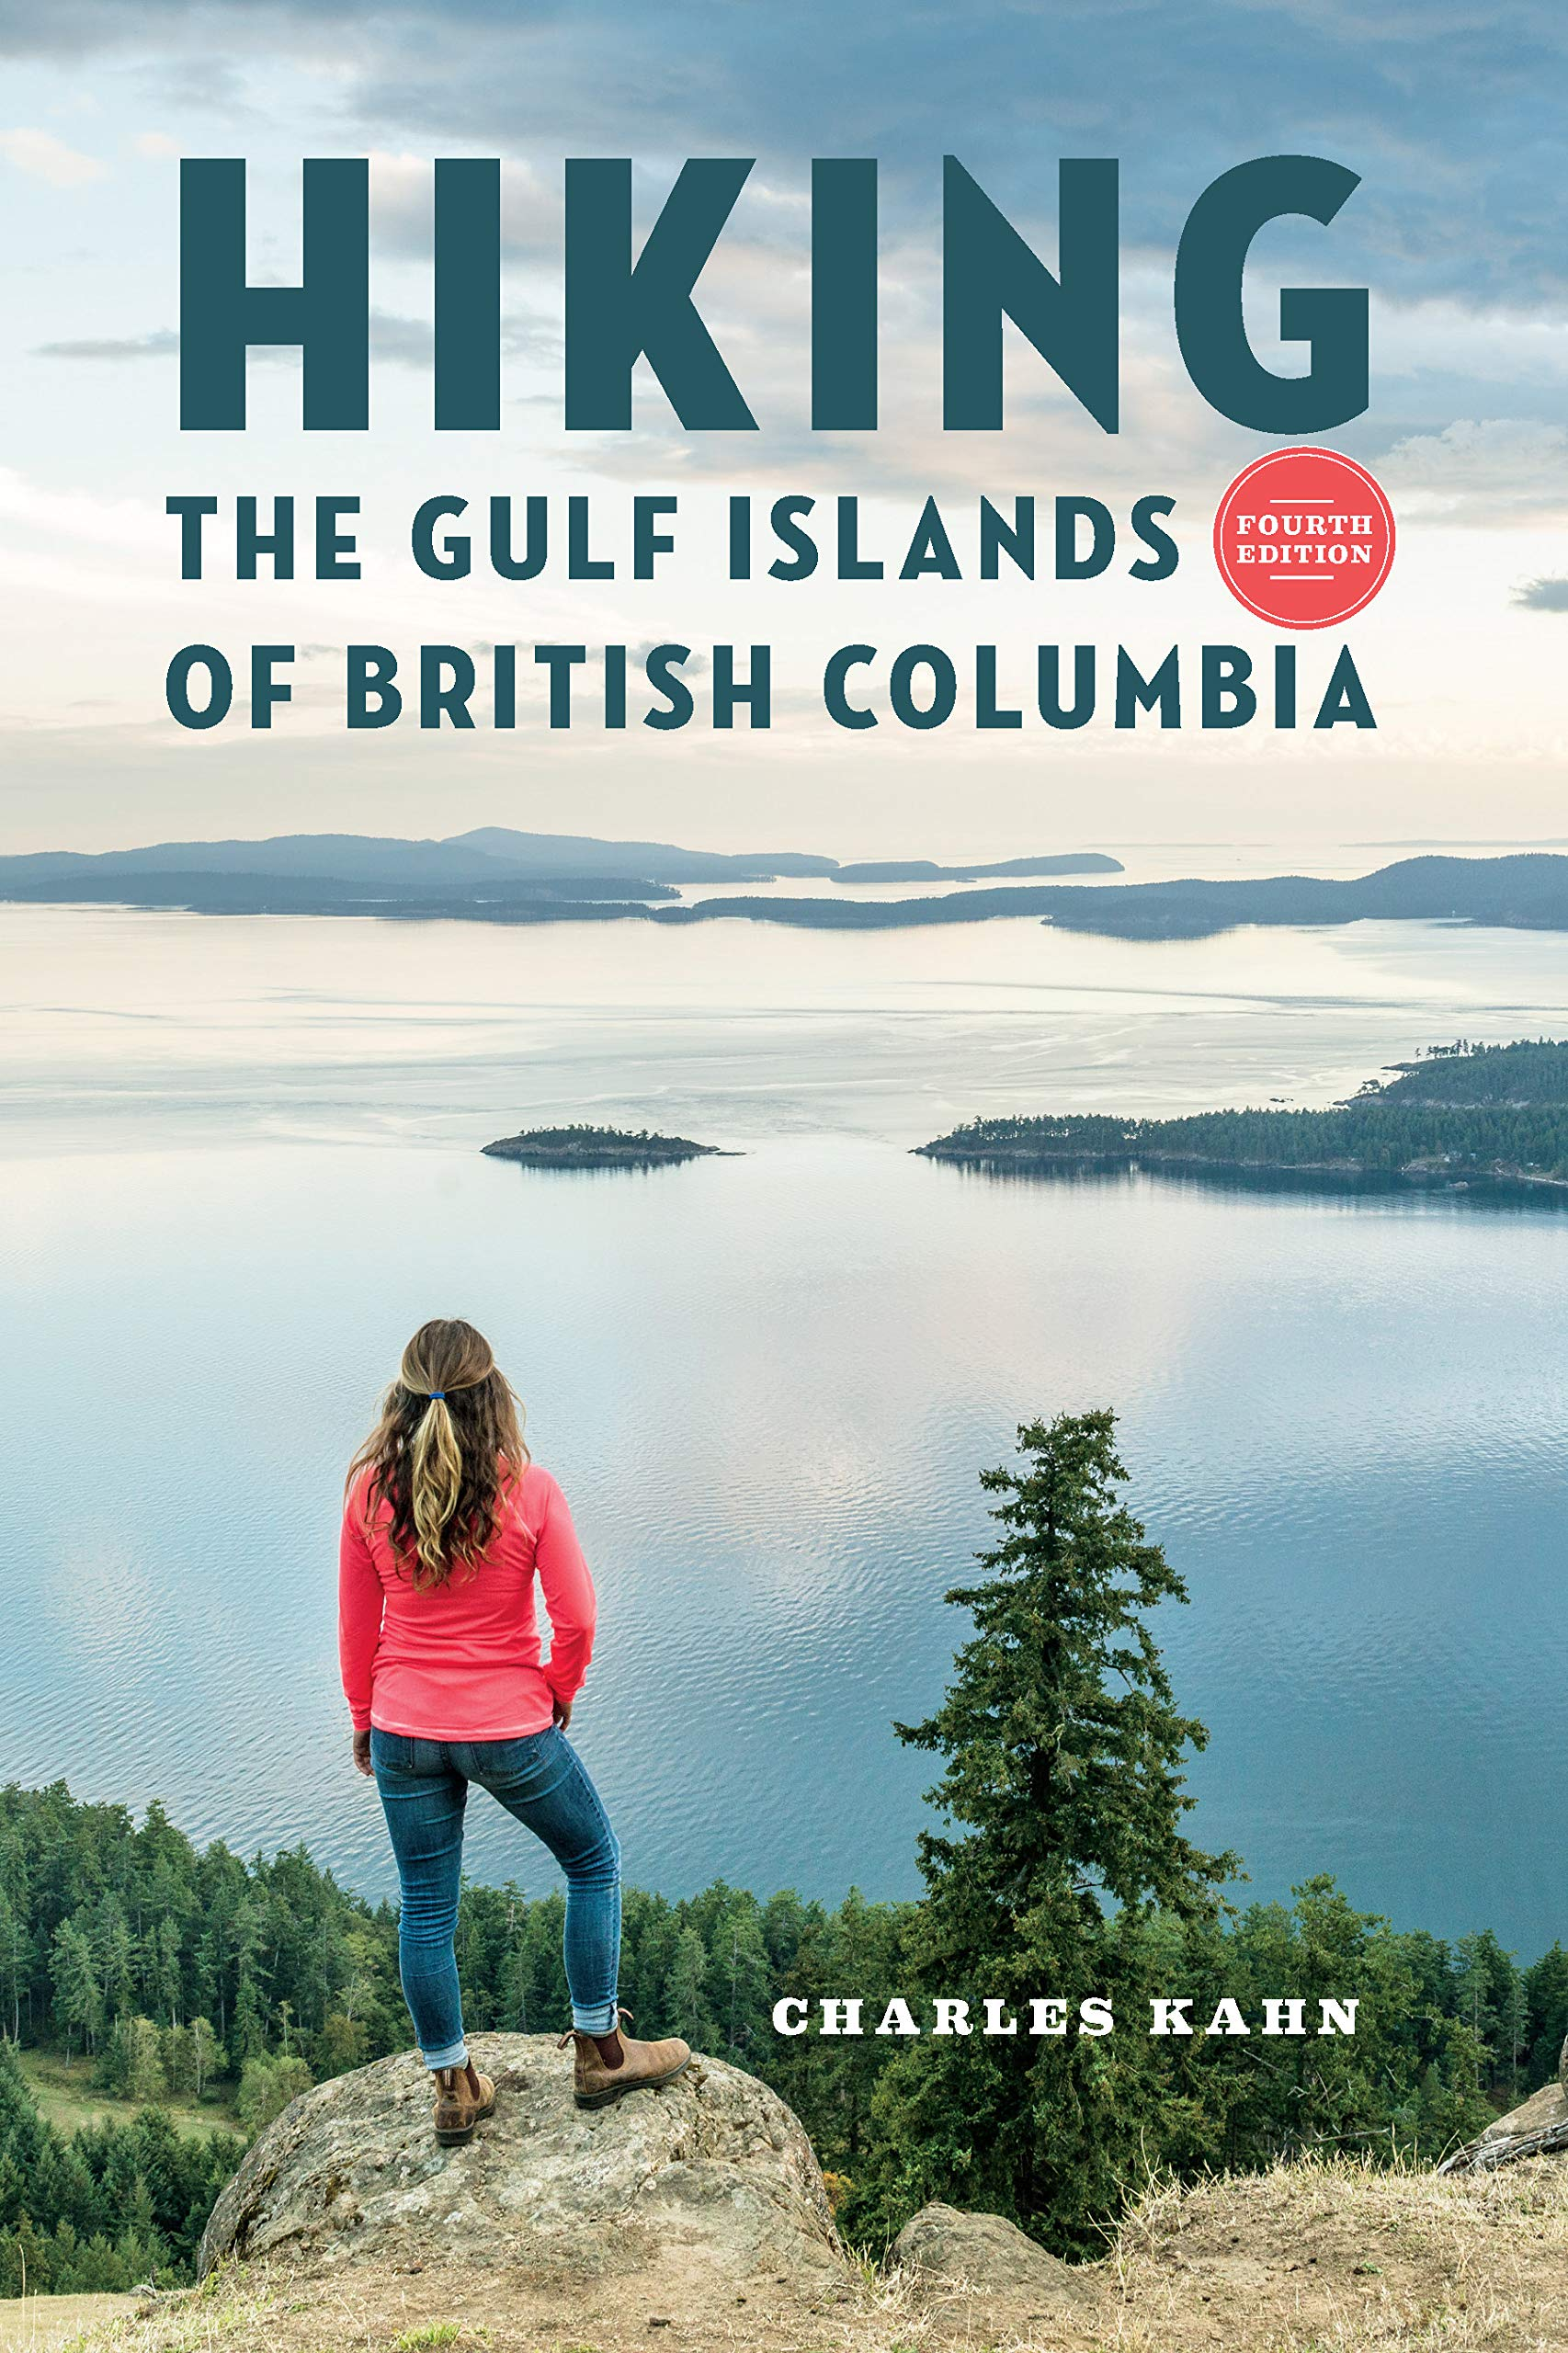 Hiking the Gulf Islands of British Columbia 9781550178258 Charles Kahn Raincoast   Wandelgidsen West-Canada, Rockies